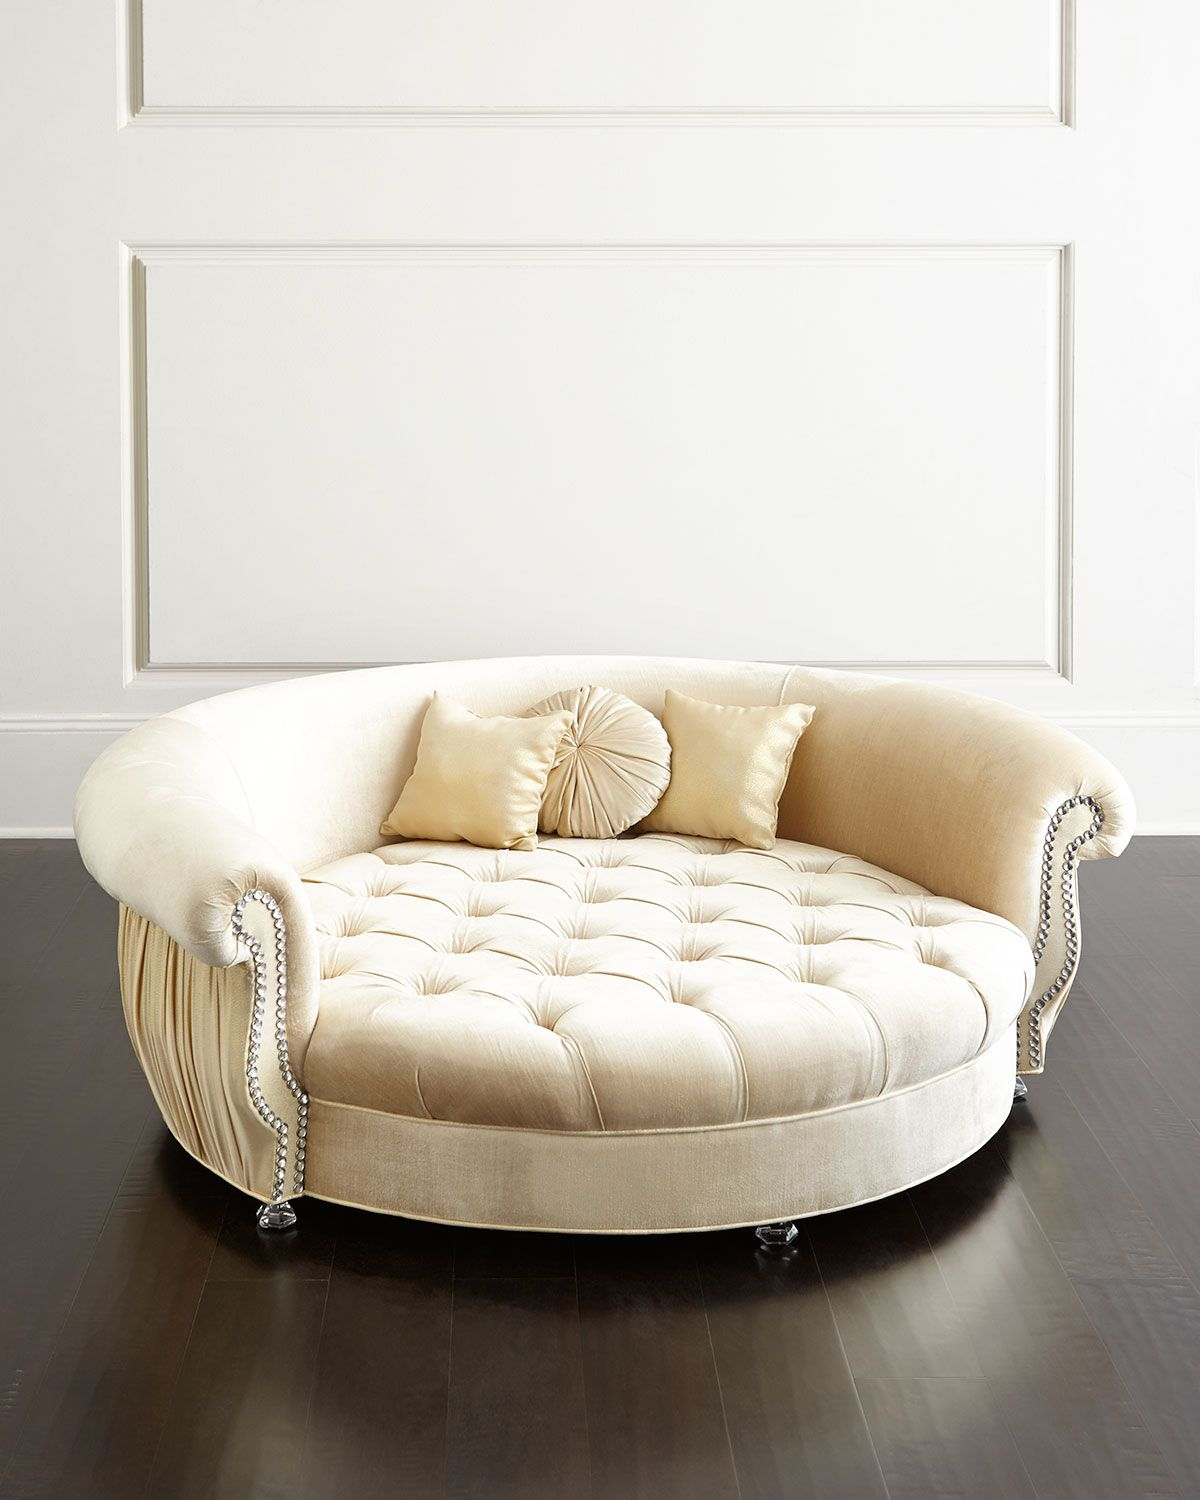 Genial Cuddle Pet Bed By Haute House At Neiman Marcus. | Modern Furniture | Find  More Luxury Furniture In Boca Do Lobo | Www.bocadolobo.com/en